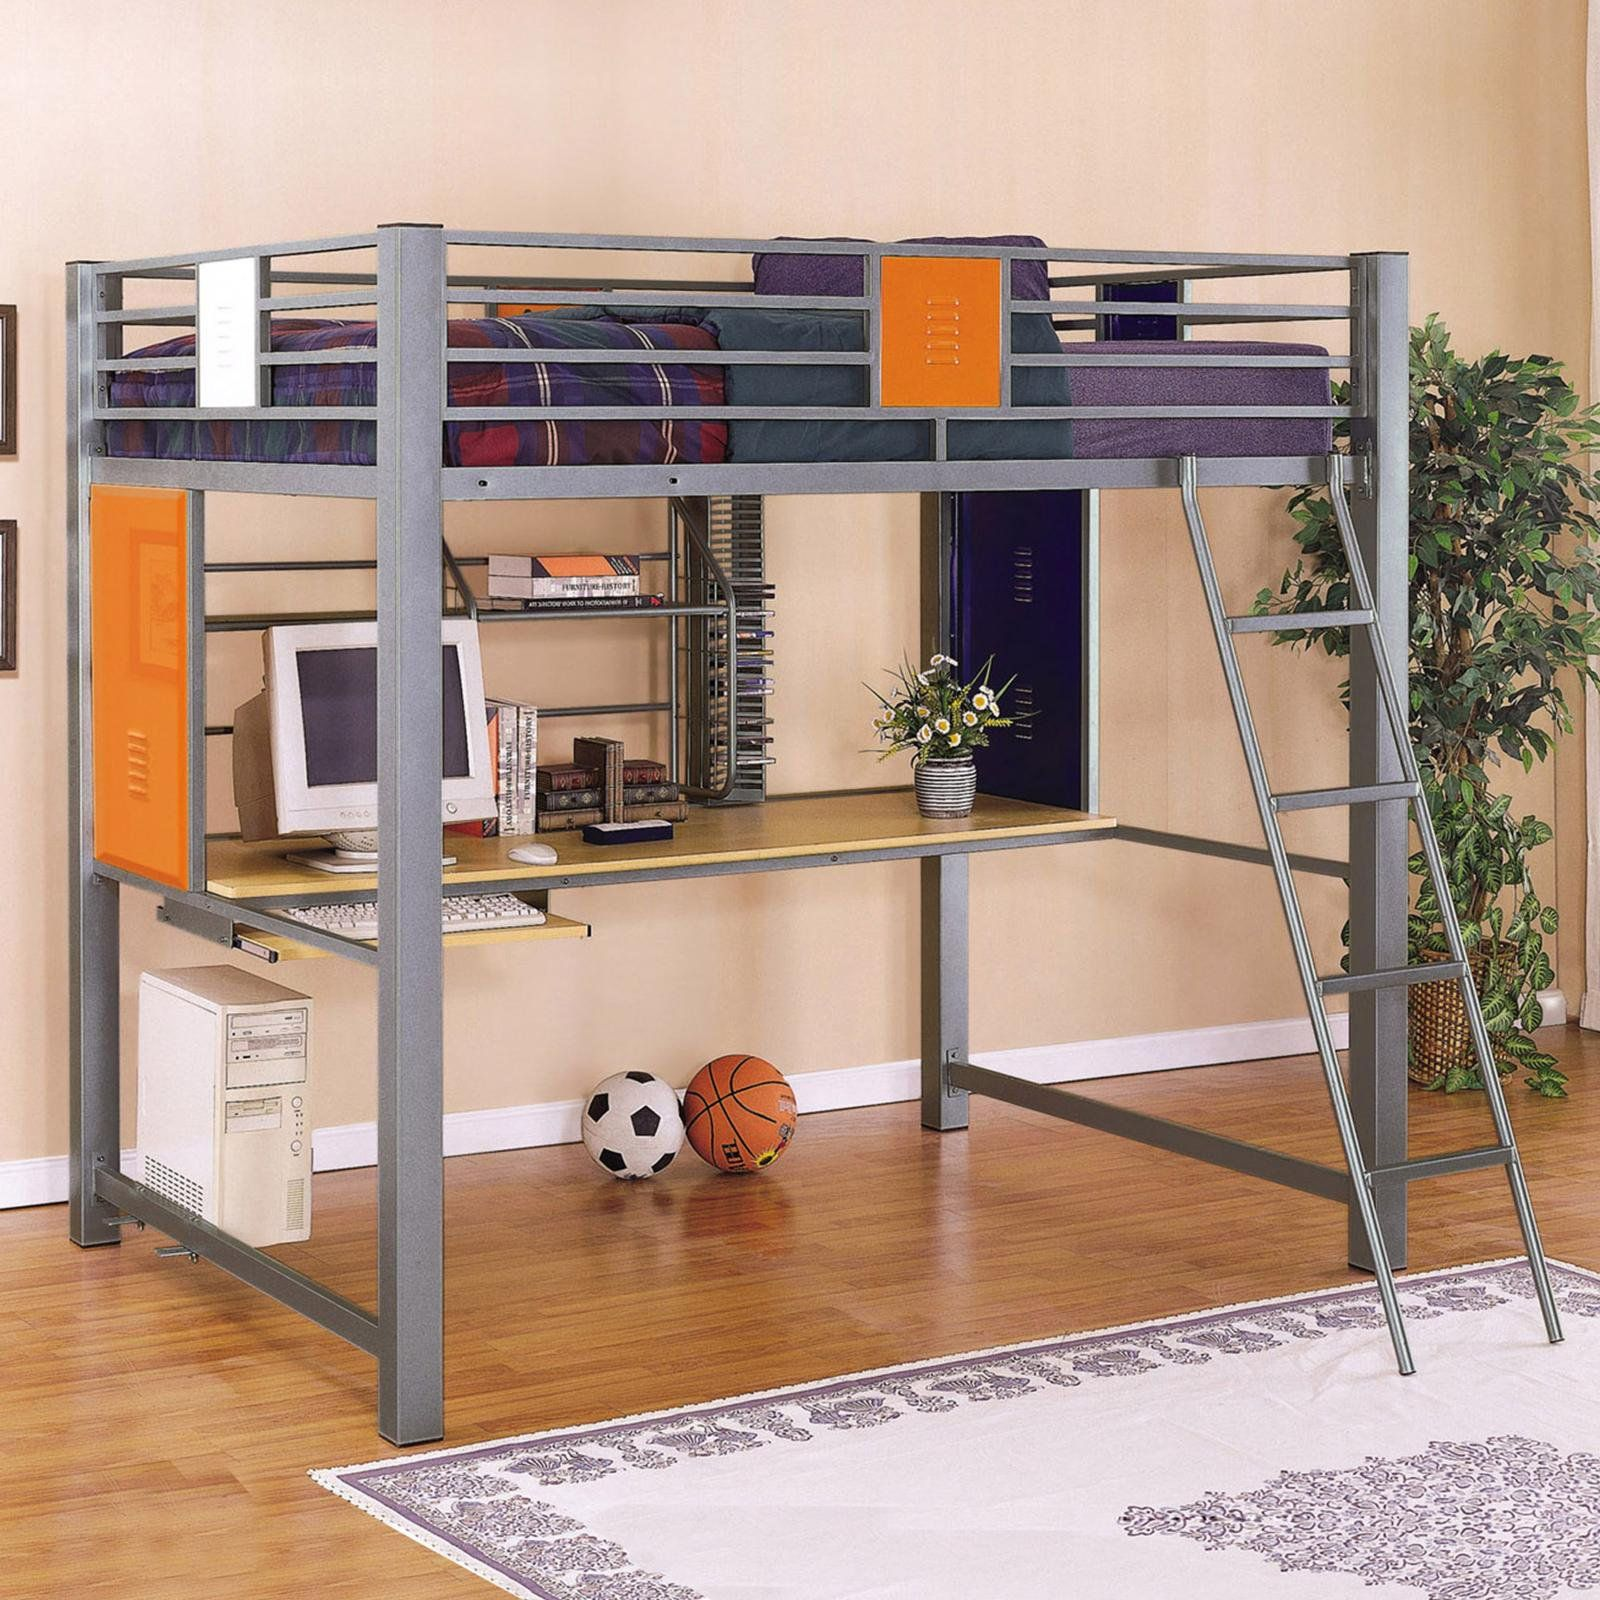 The Double Beds And Single Size Are Very Common Within Home Use Bunk With Desk Possess Their Individual E Advantages